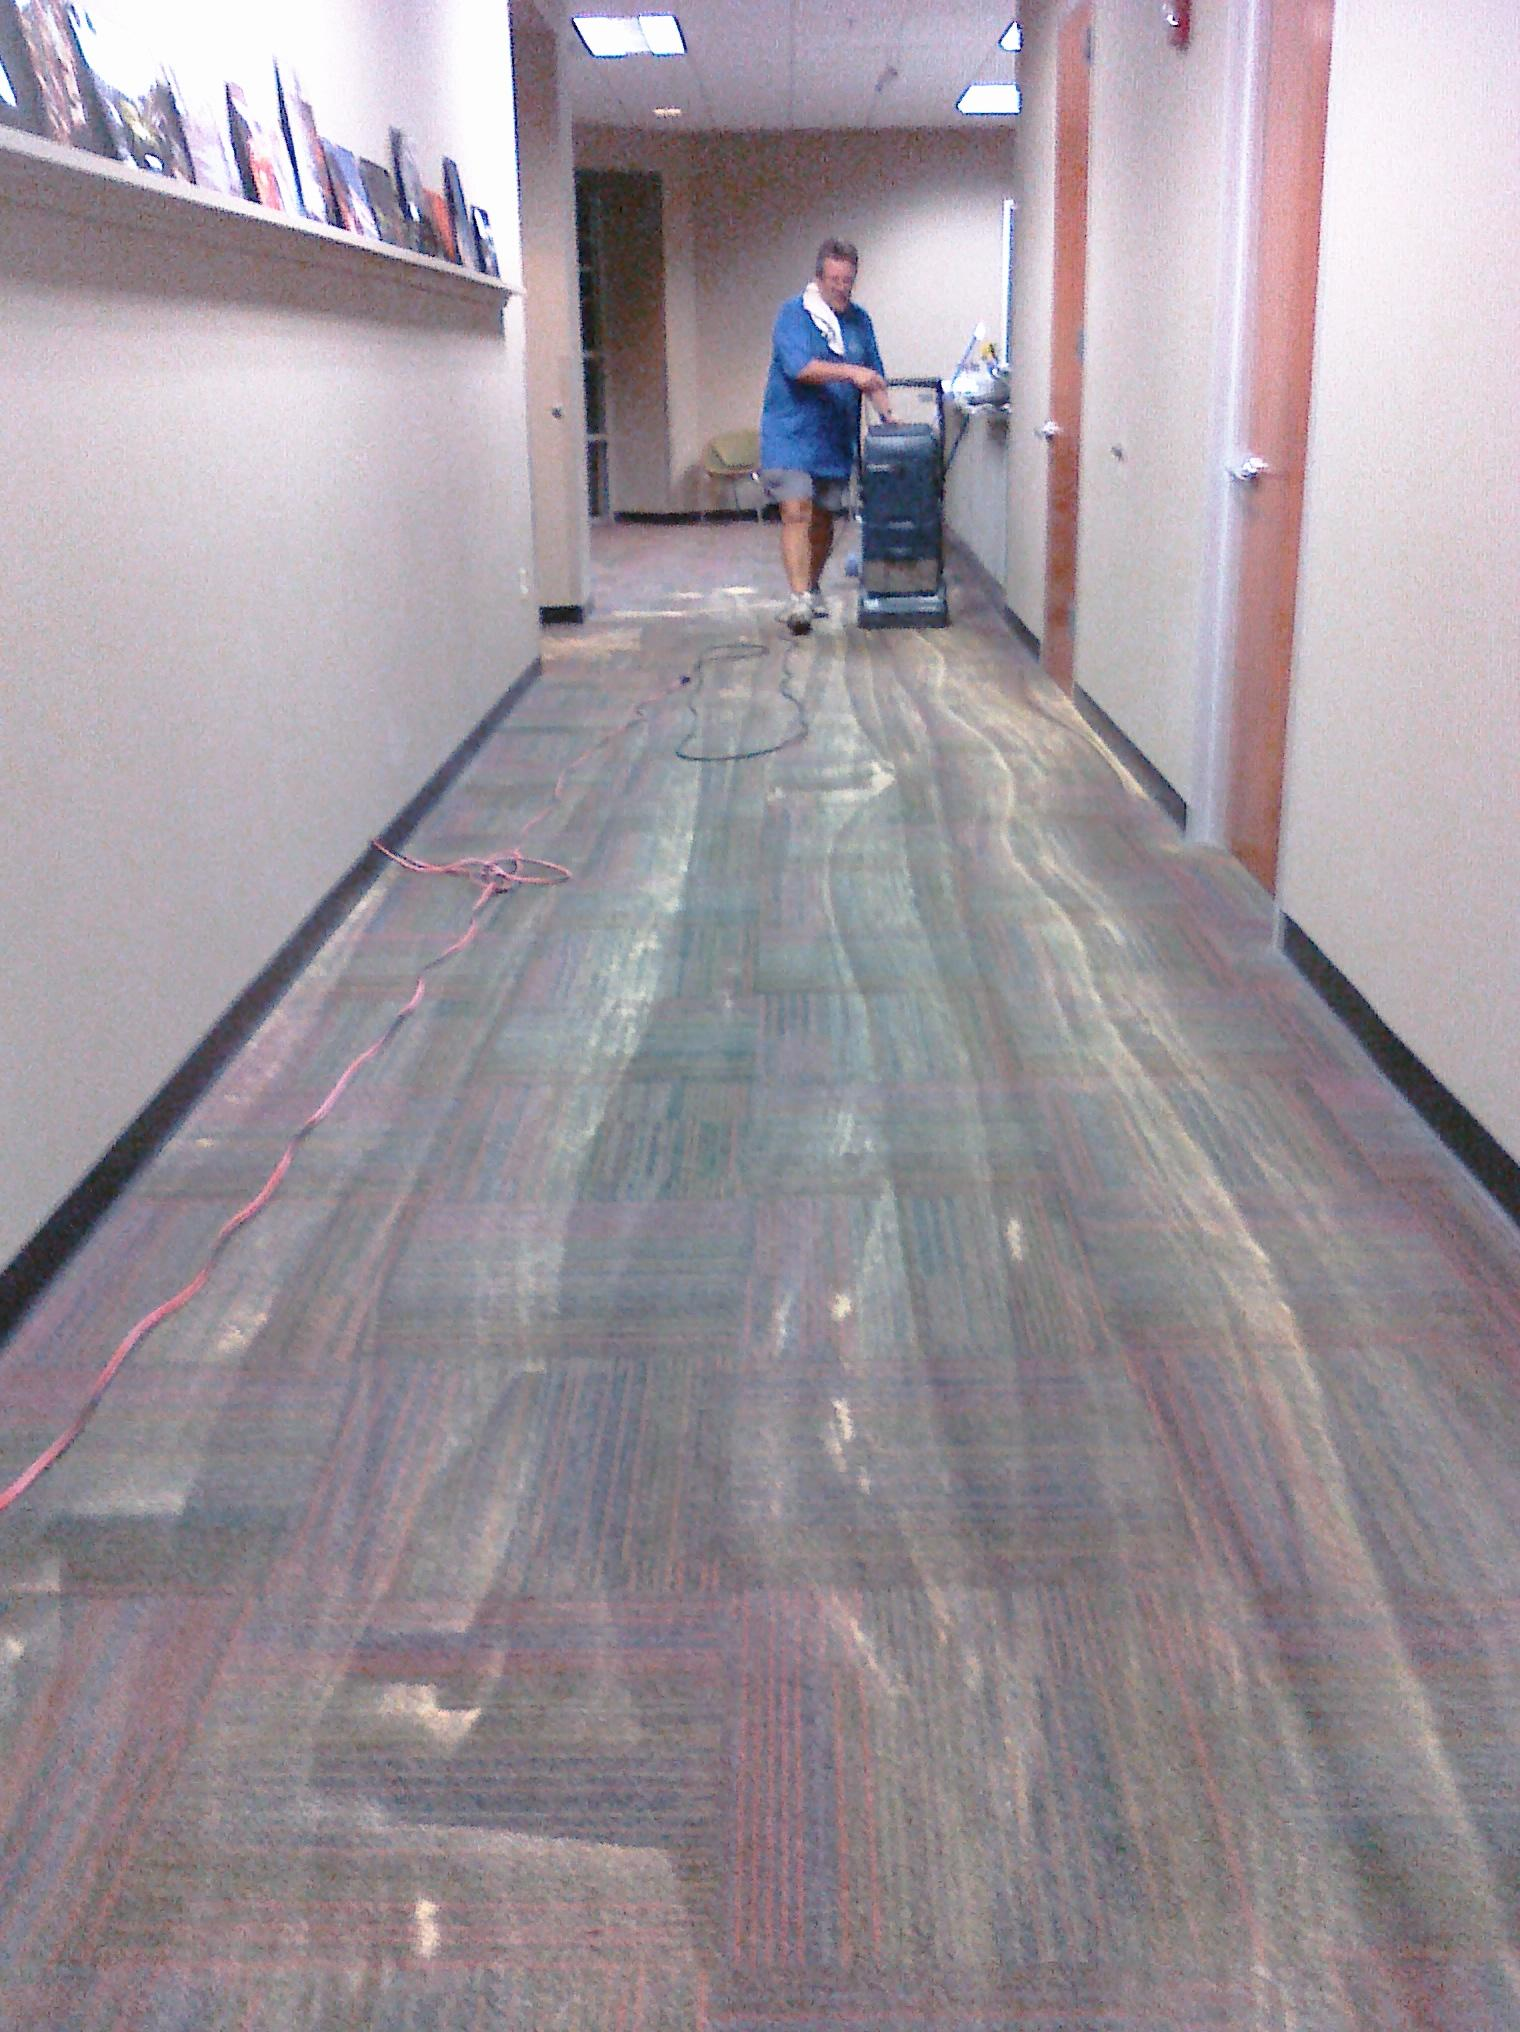 Green Cleaning Services LLC image 22